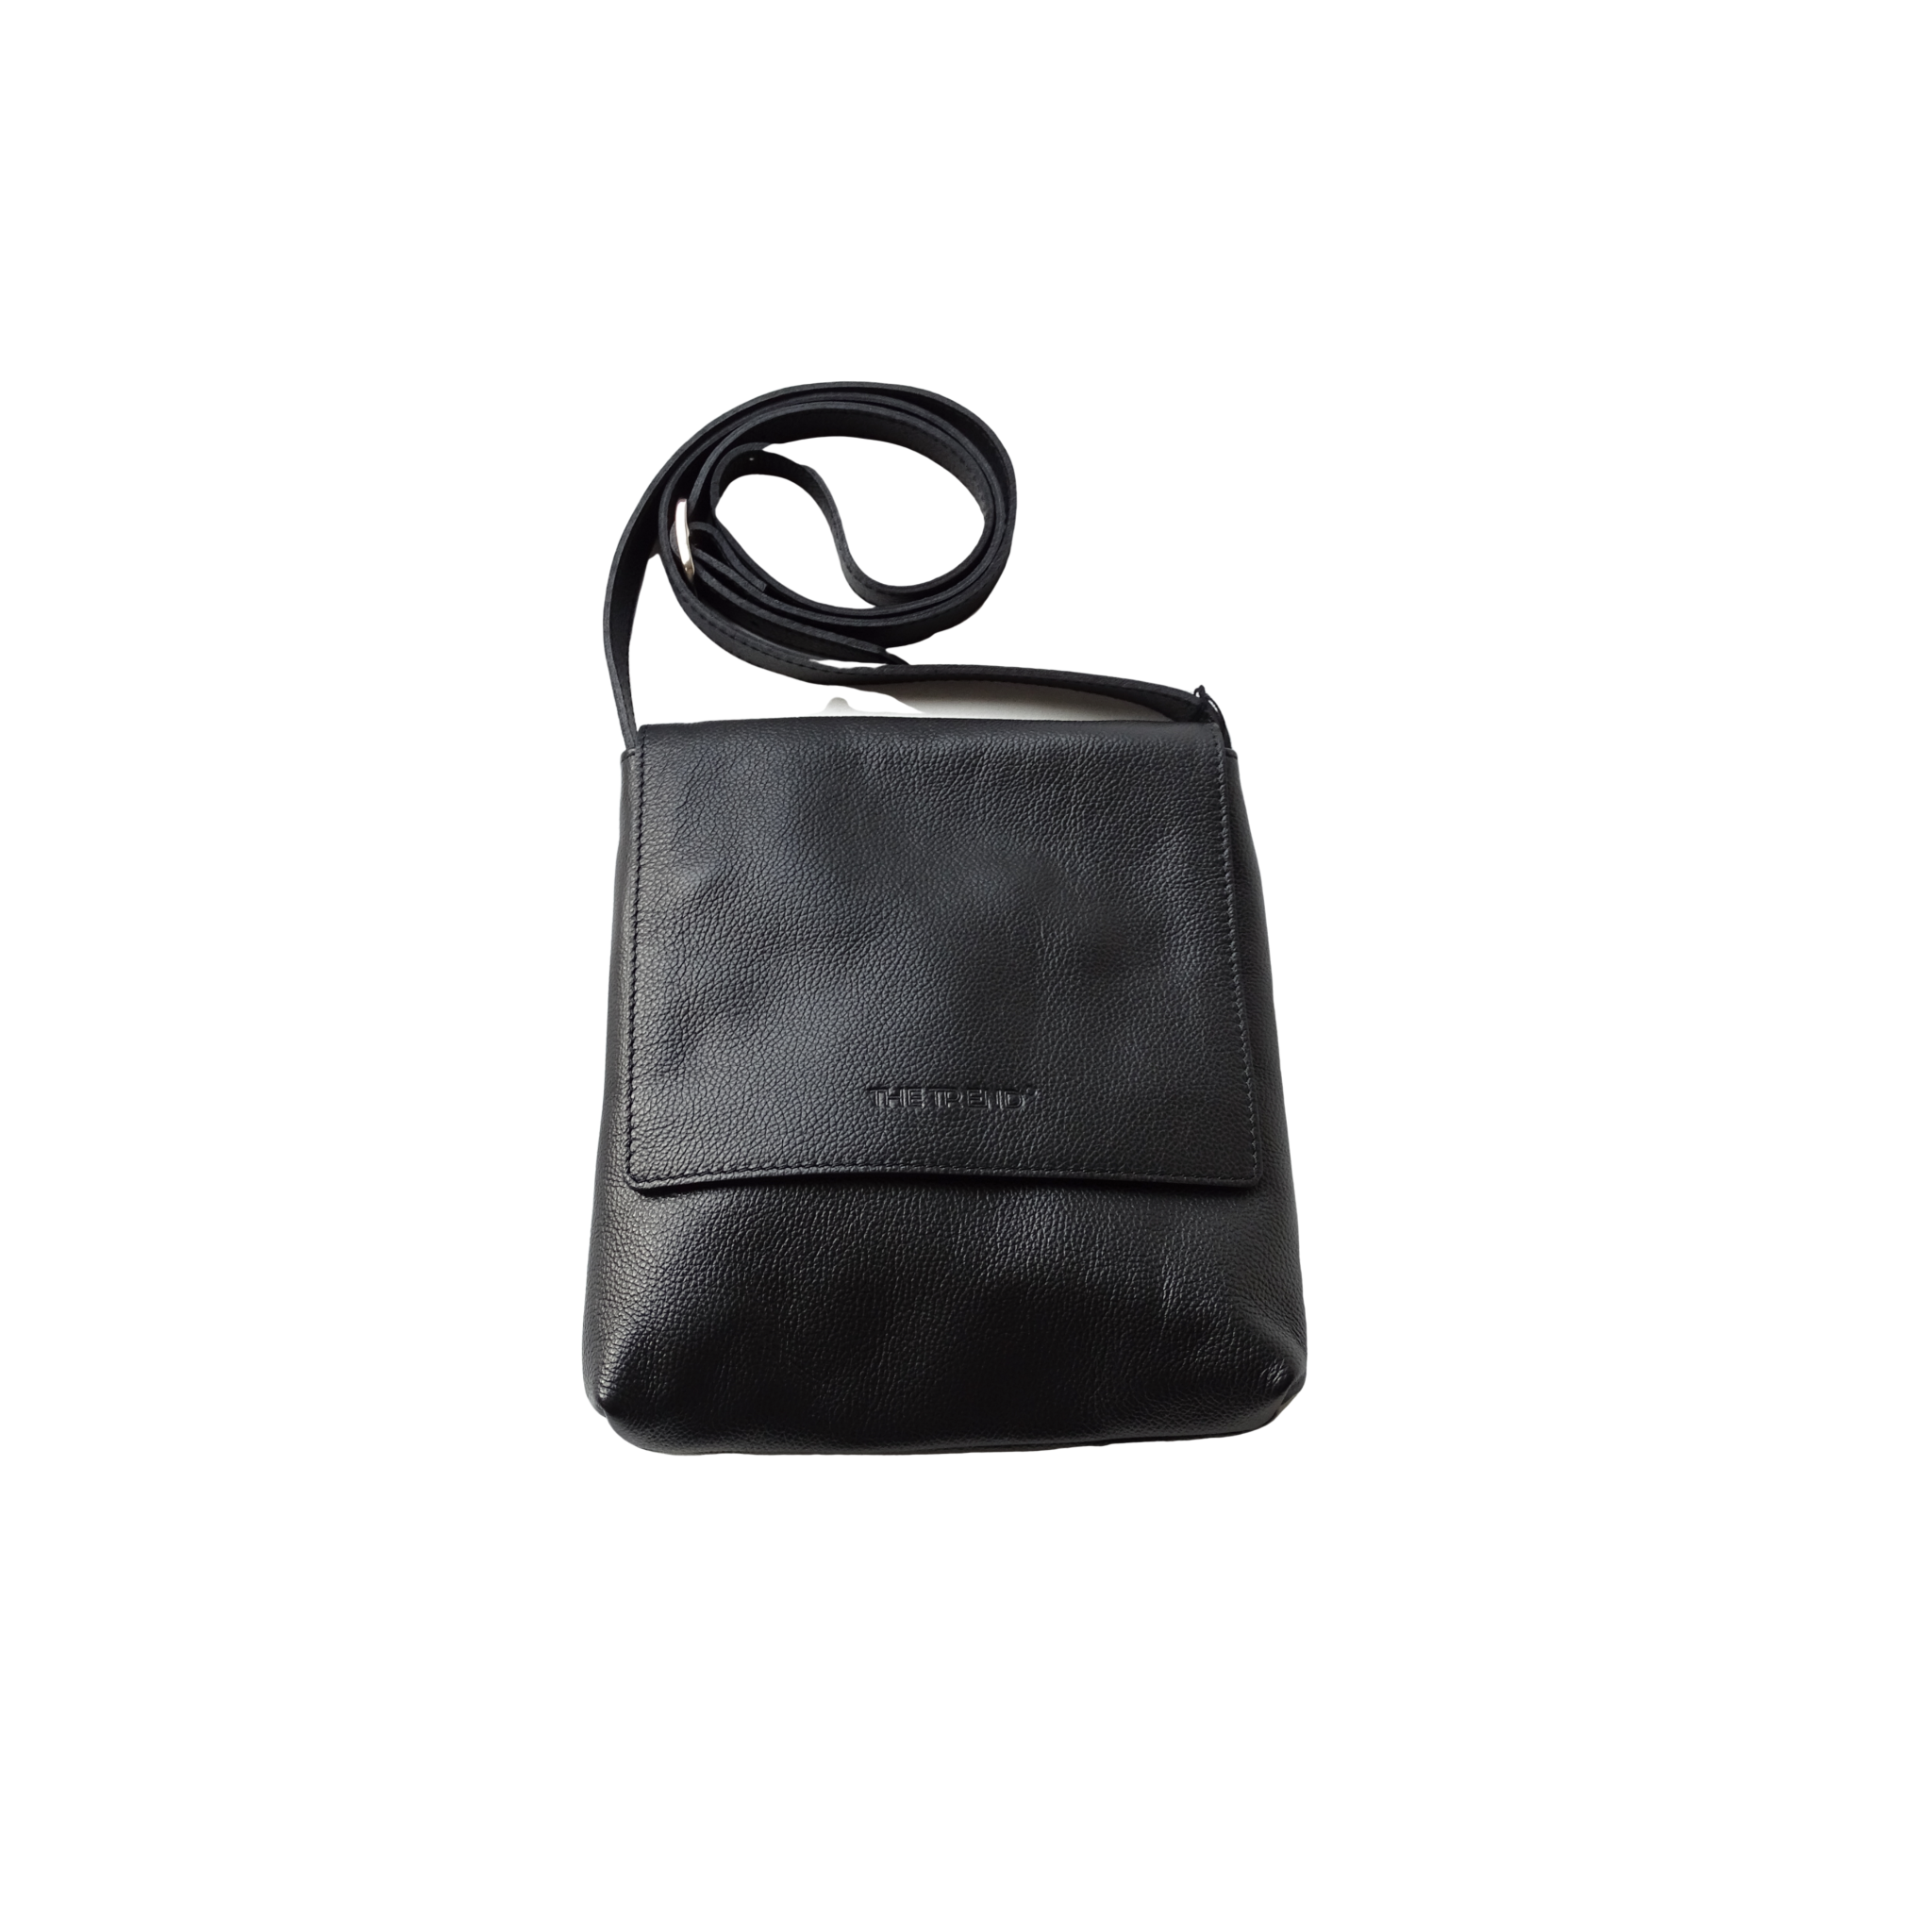 The Trend The Trend small cross body purse black (738125)